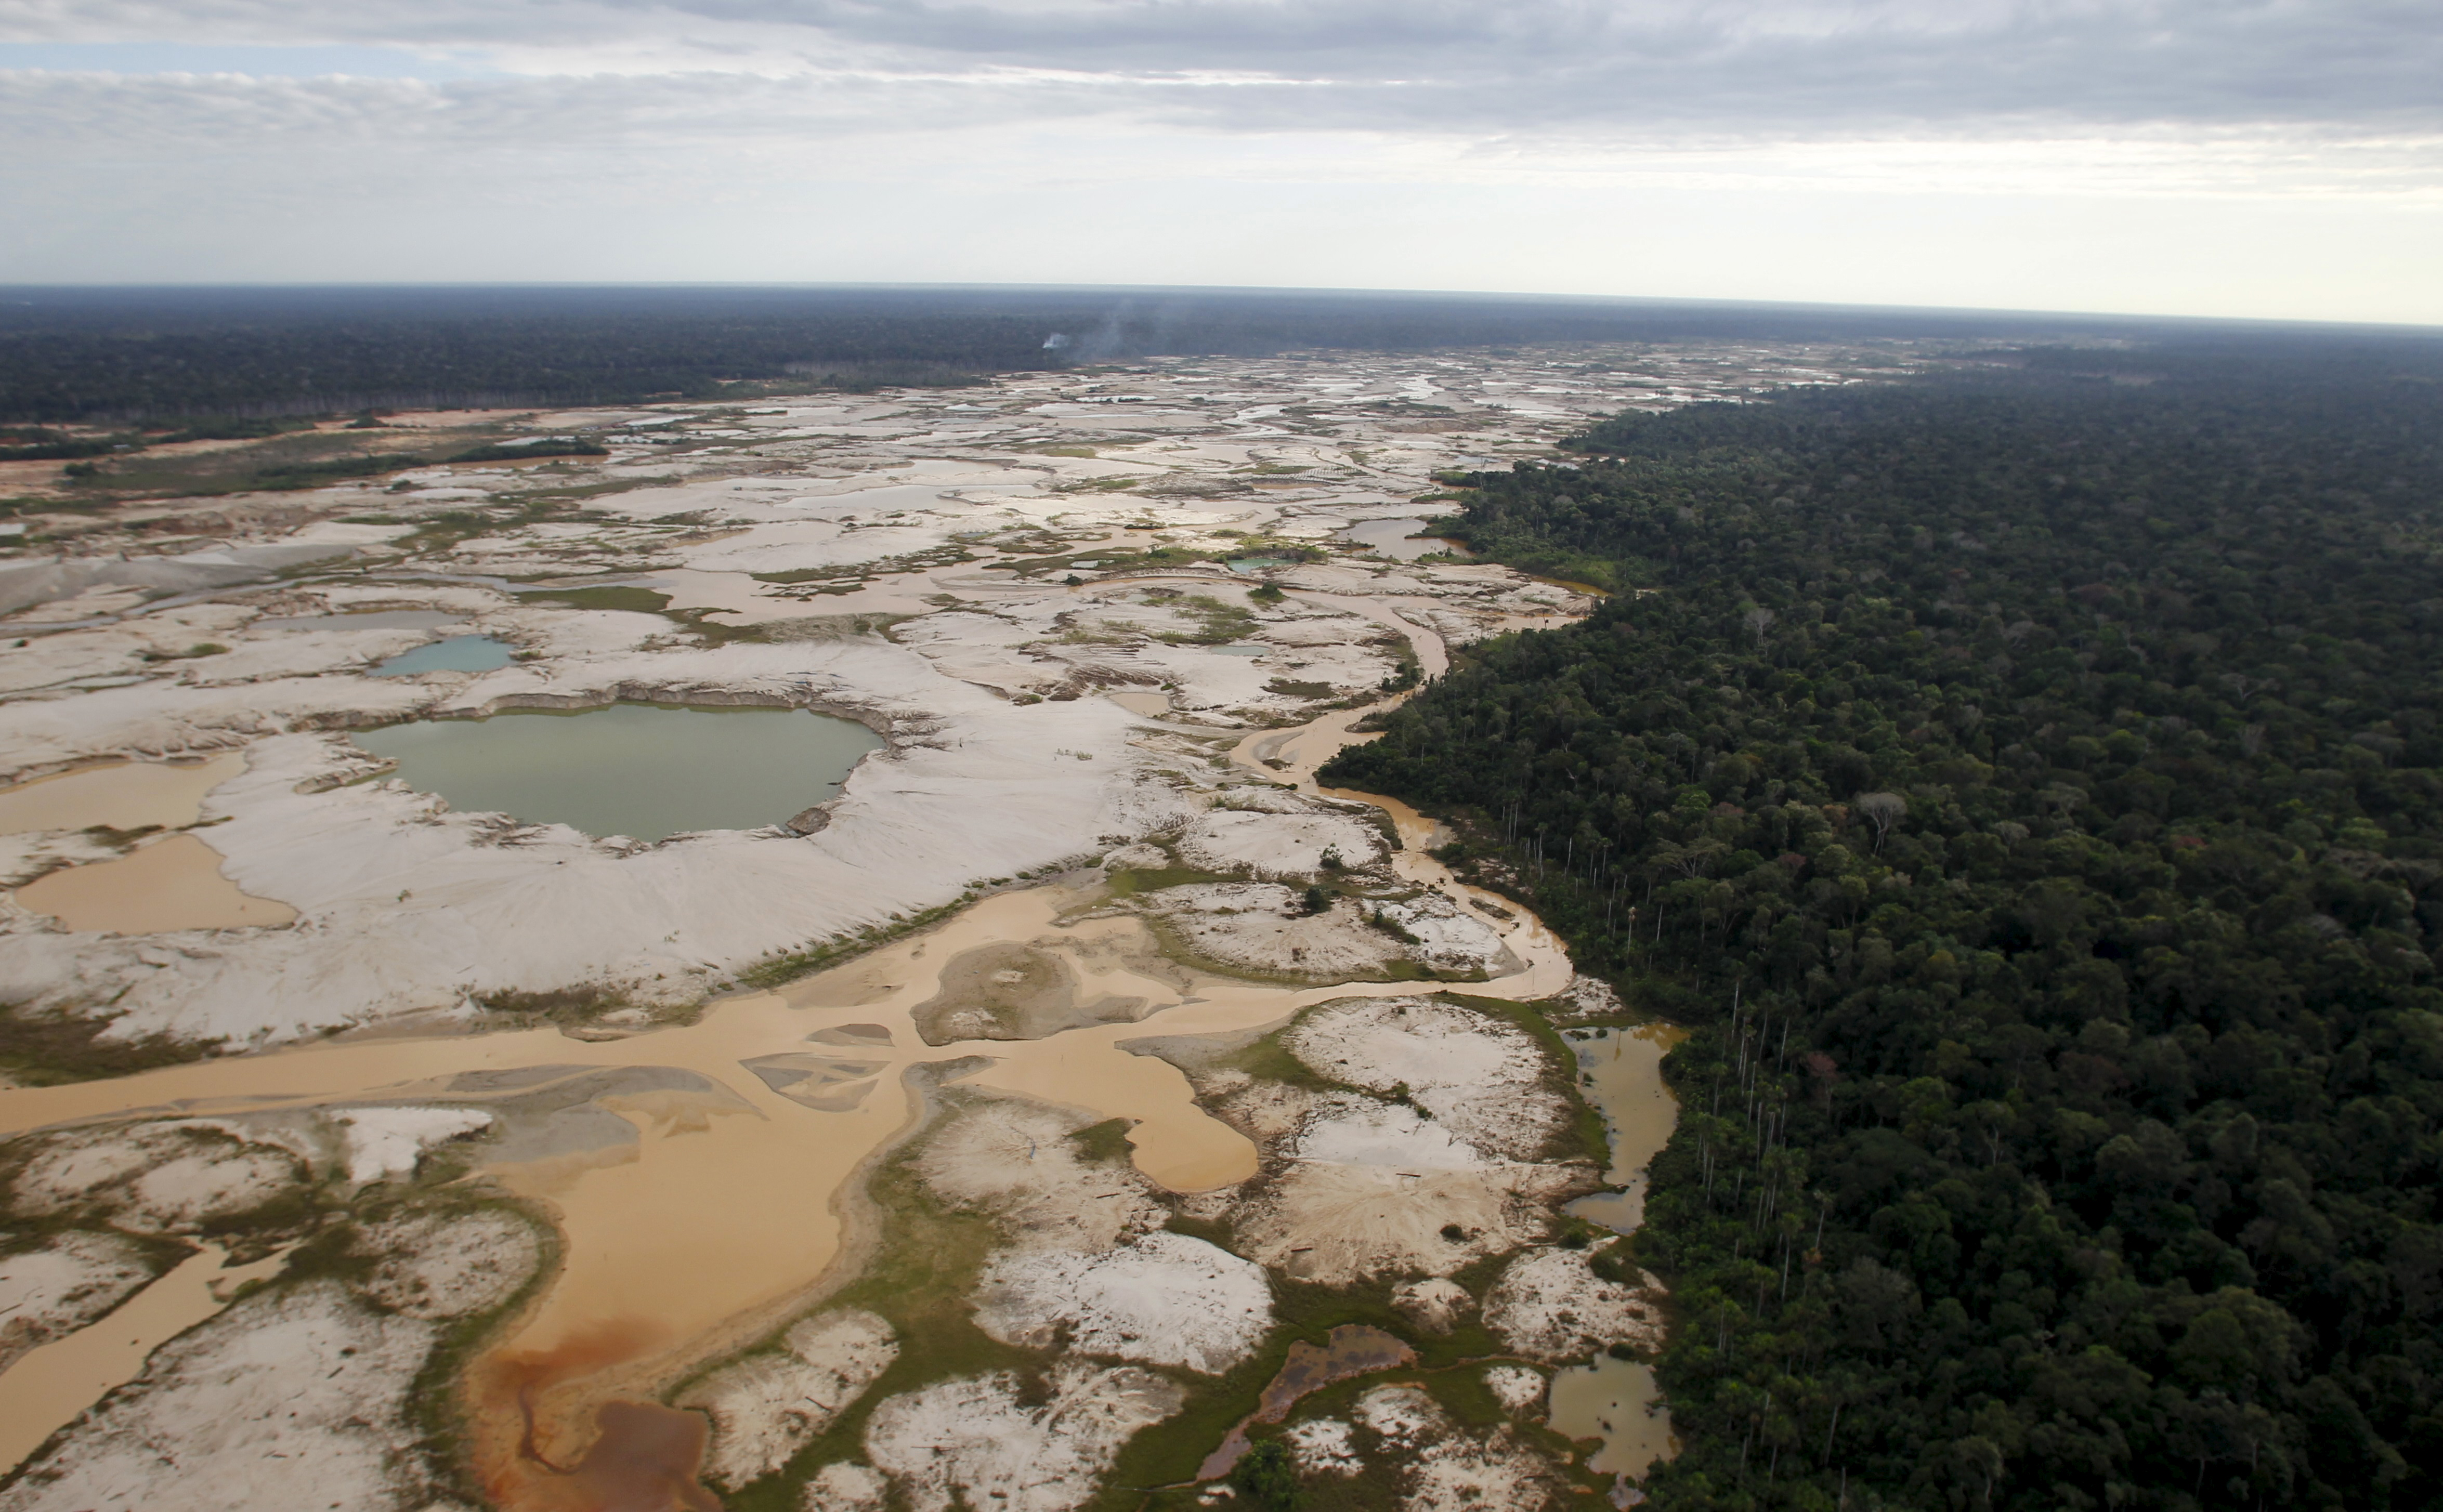 Illegal deforestation in the Amazon Rainforest